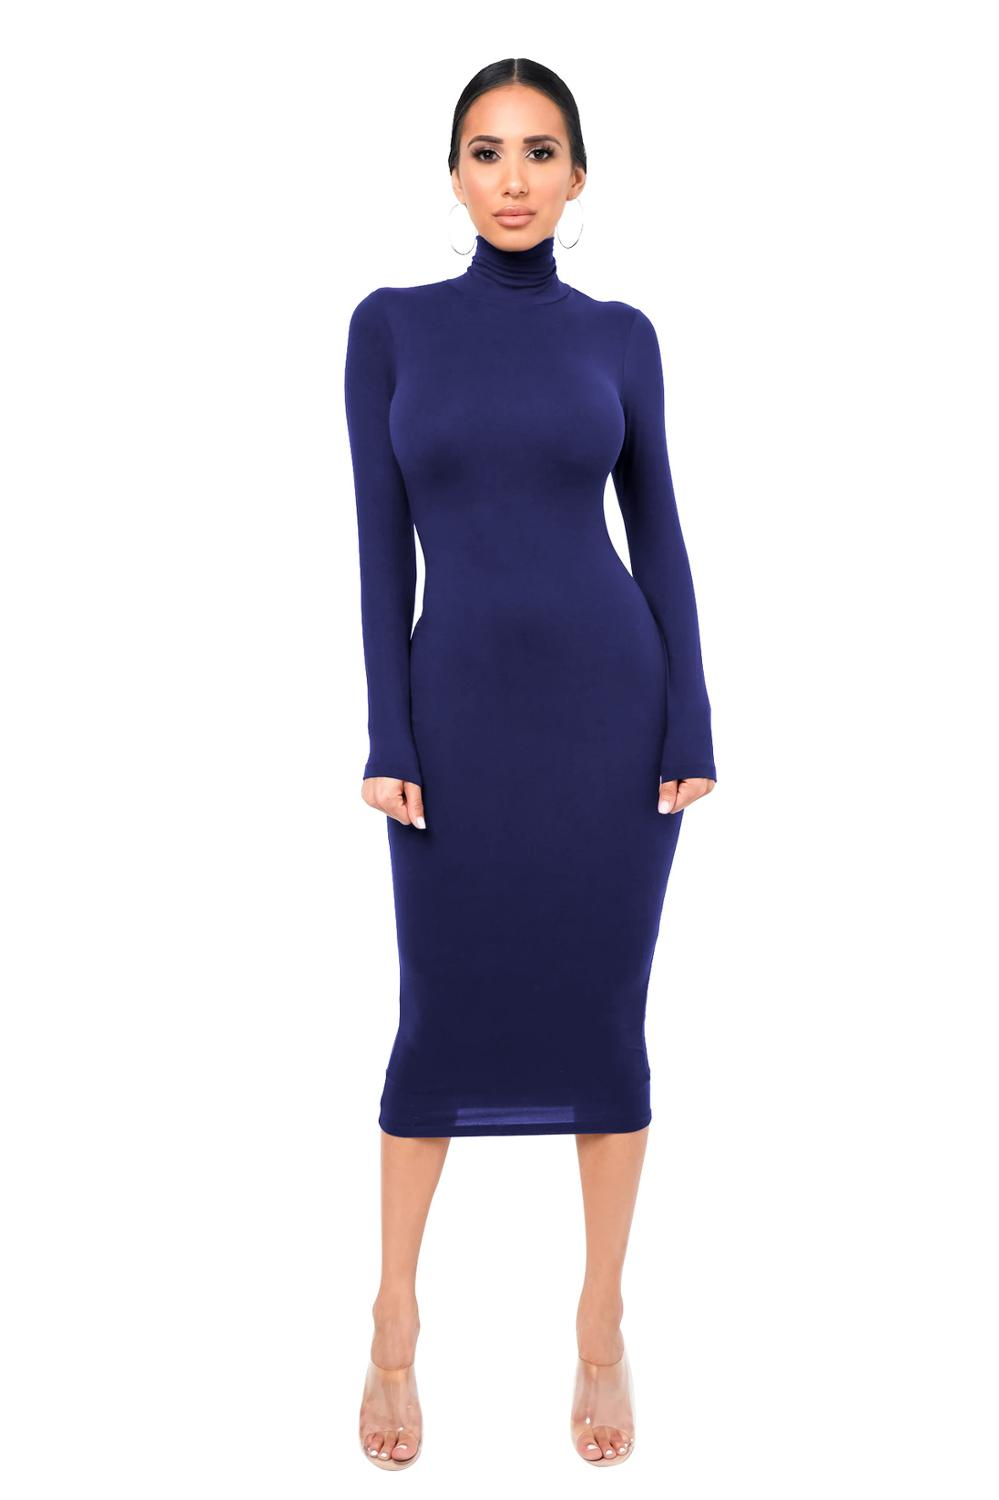 Sexy Women Long Sleeve Turtleneck Bodycon Dress Autumn Winter New Solid Casual Slim Package Hip Thick Fashion Party Vestidos